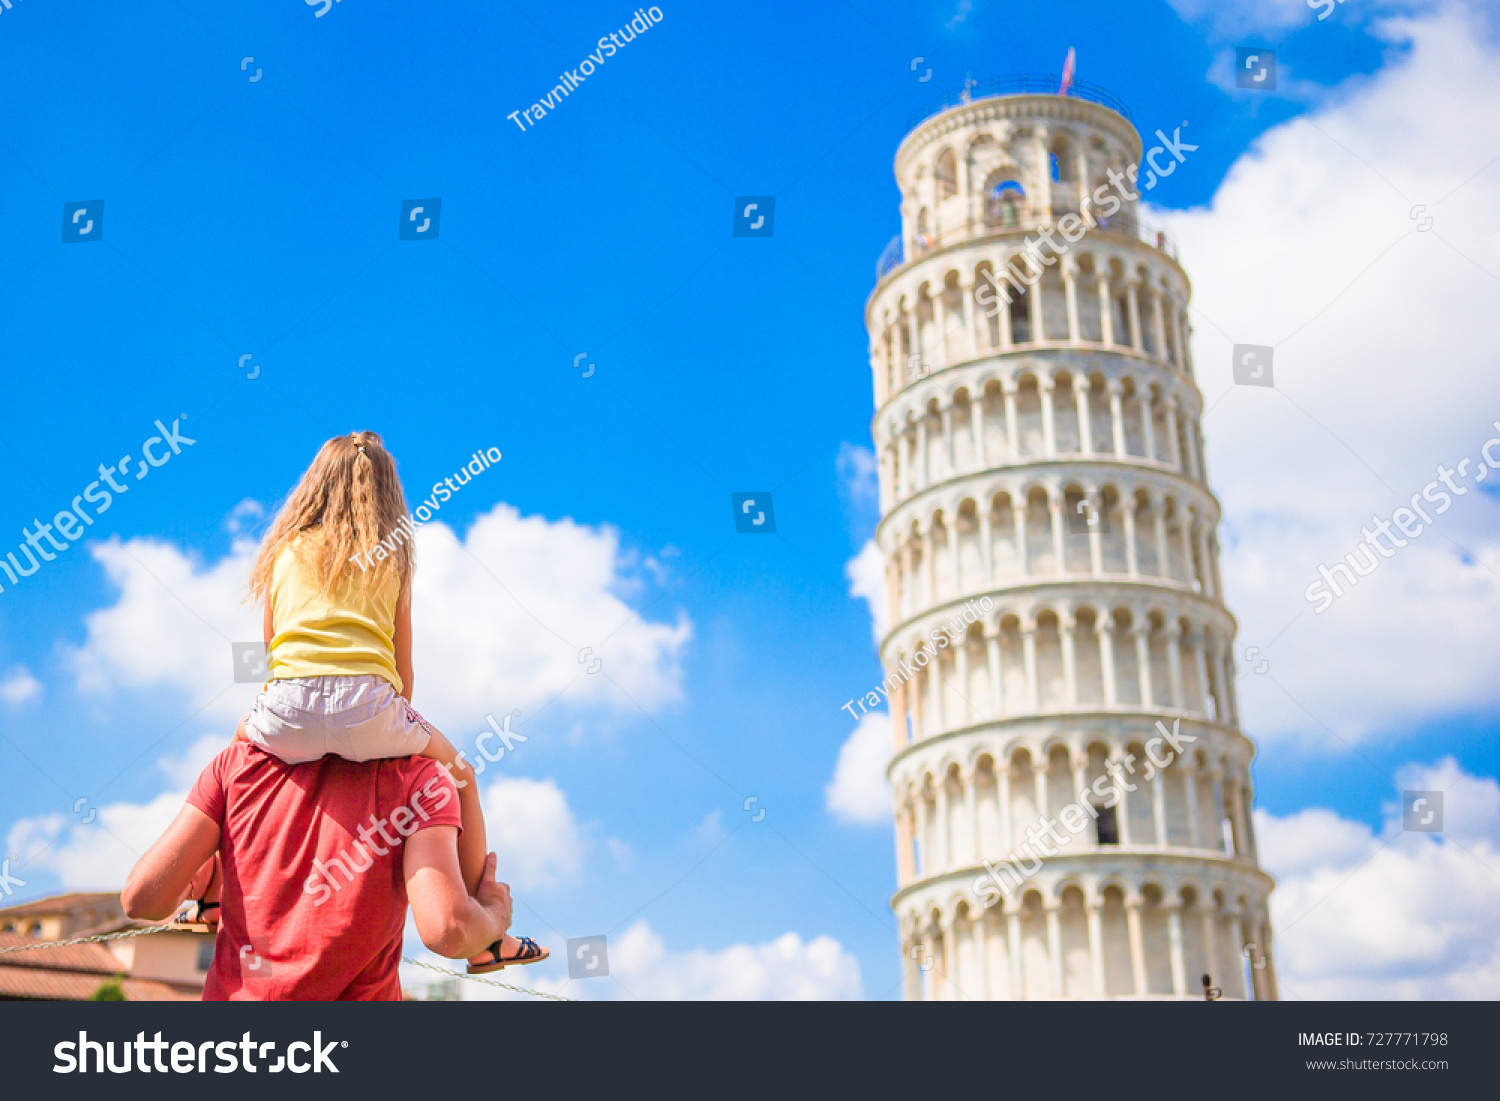 Pisa Travel Famous Places Europe Family Stock Photo Royalty Free